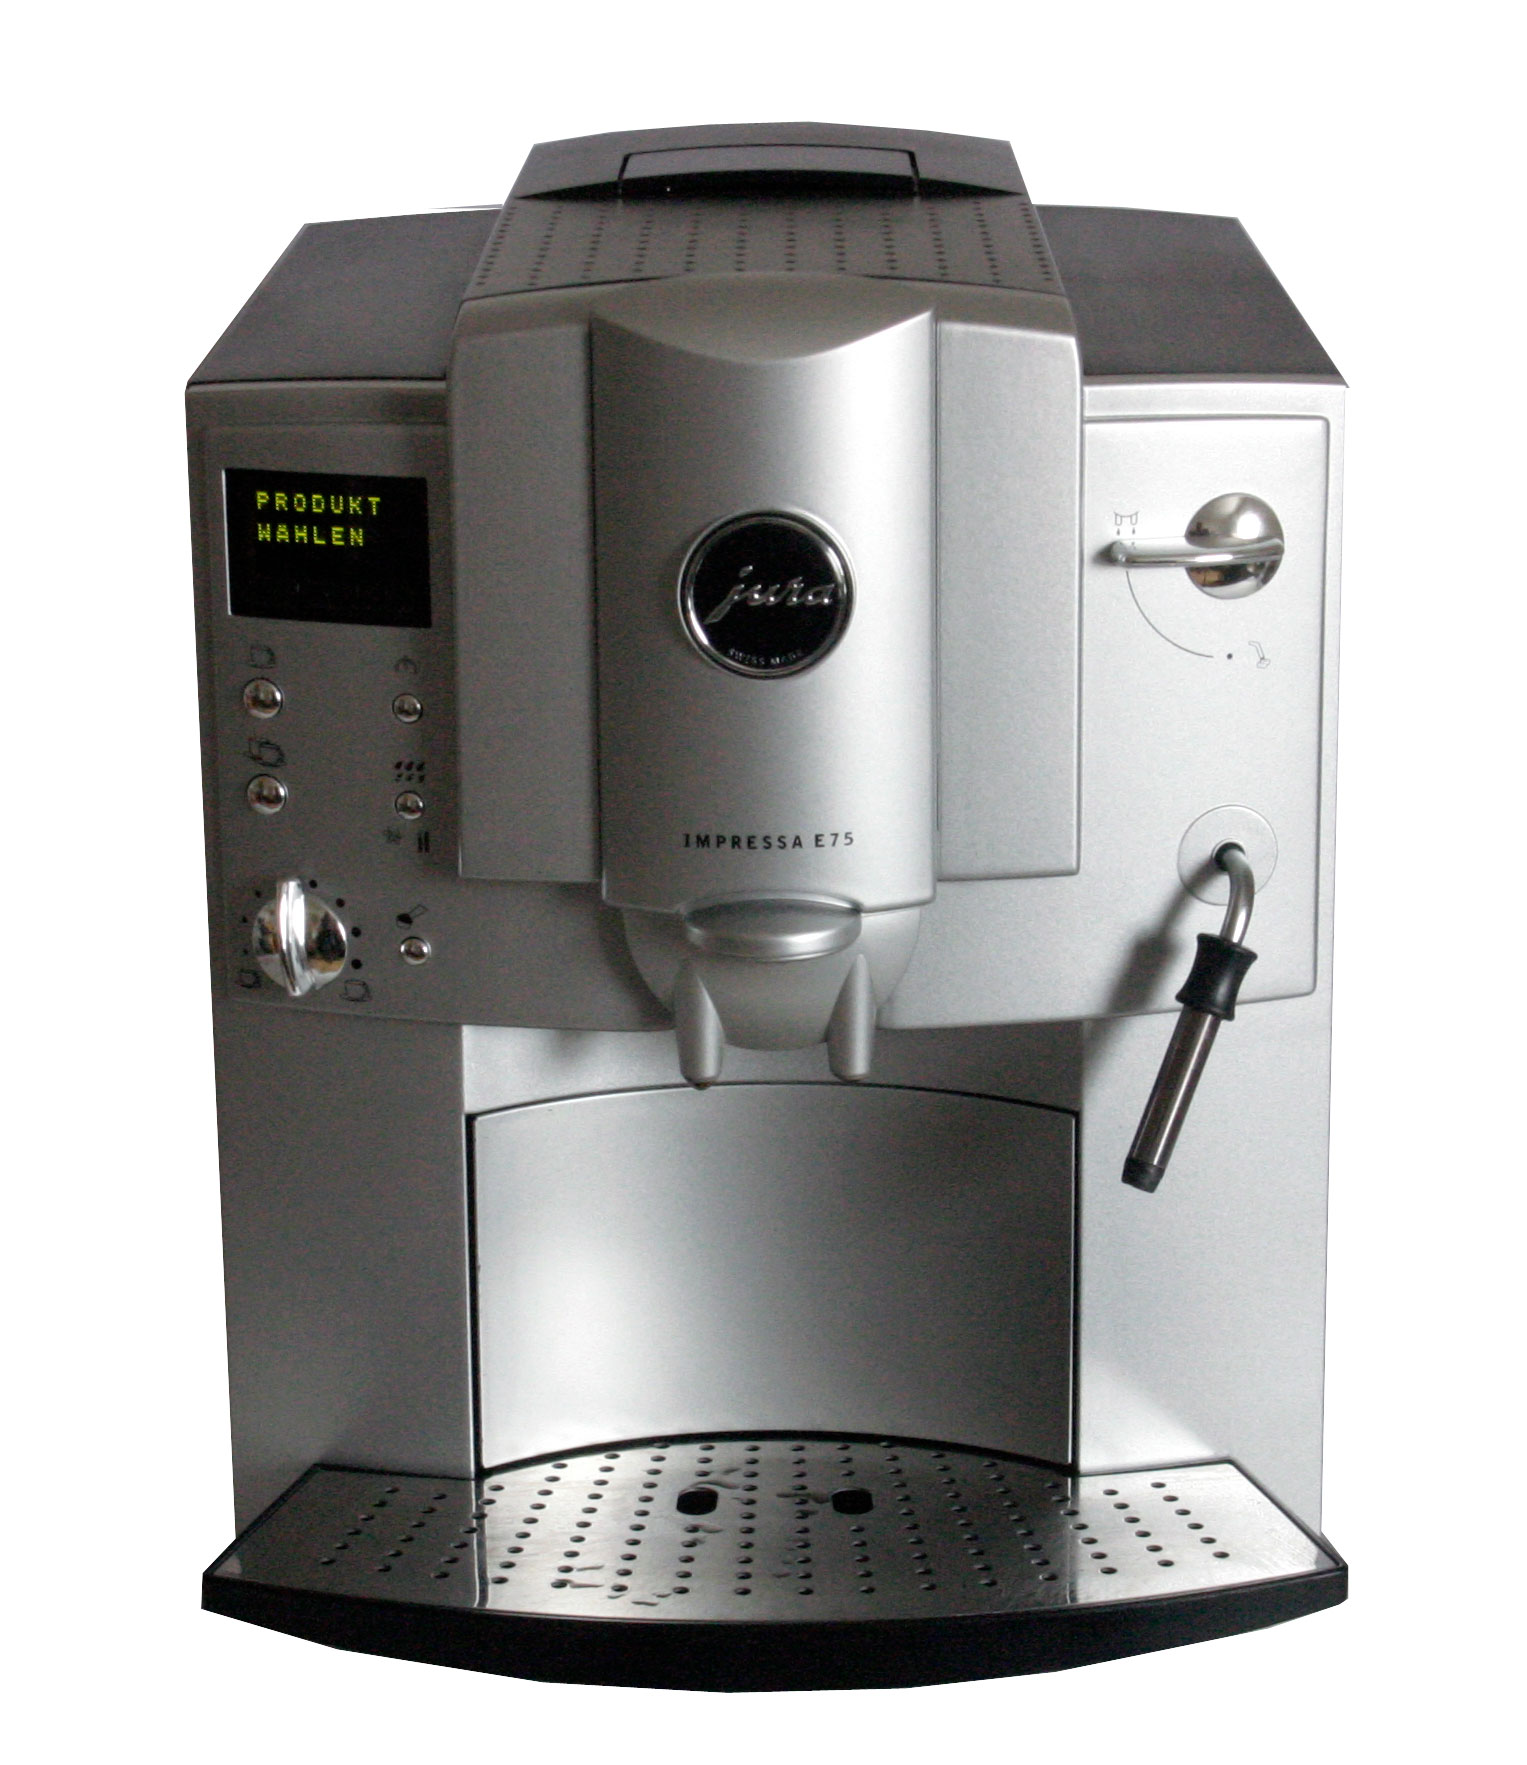 jura e75 kaffeevollautomat kaffeemaschine espressoautomat. Black Bedroom Furniture Sets. Home Design Ideas